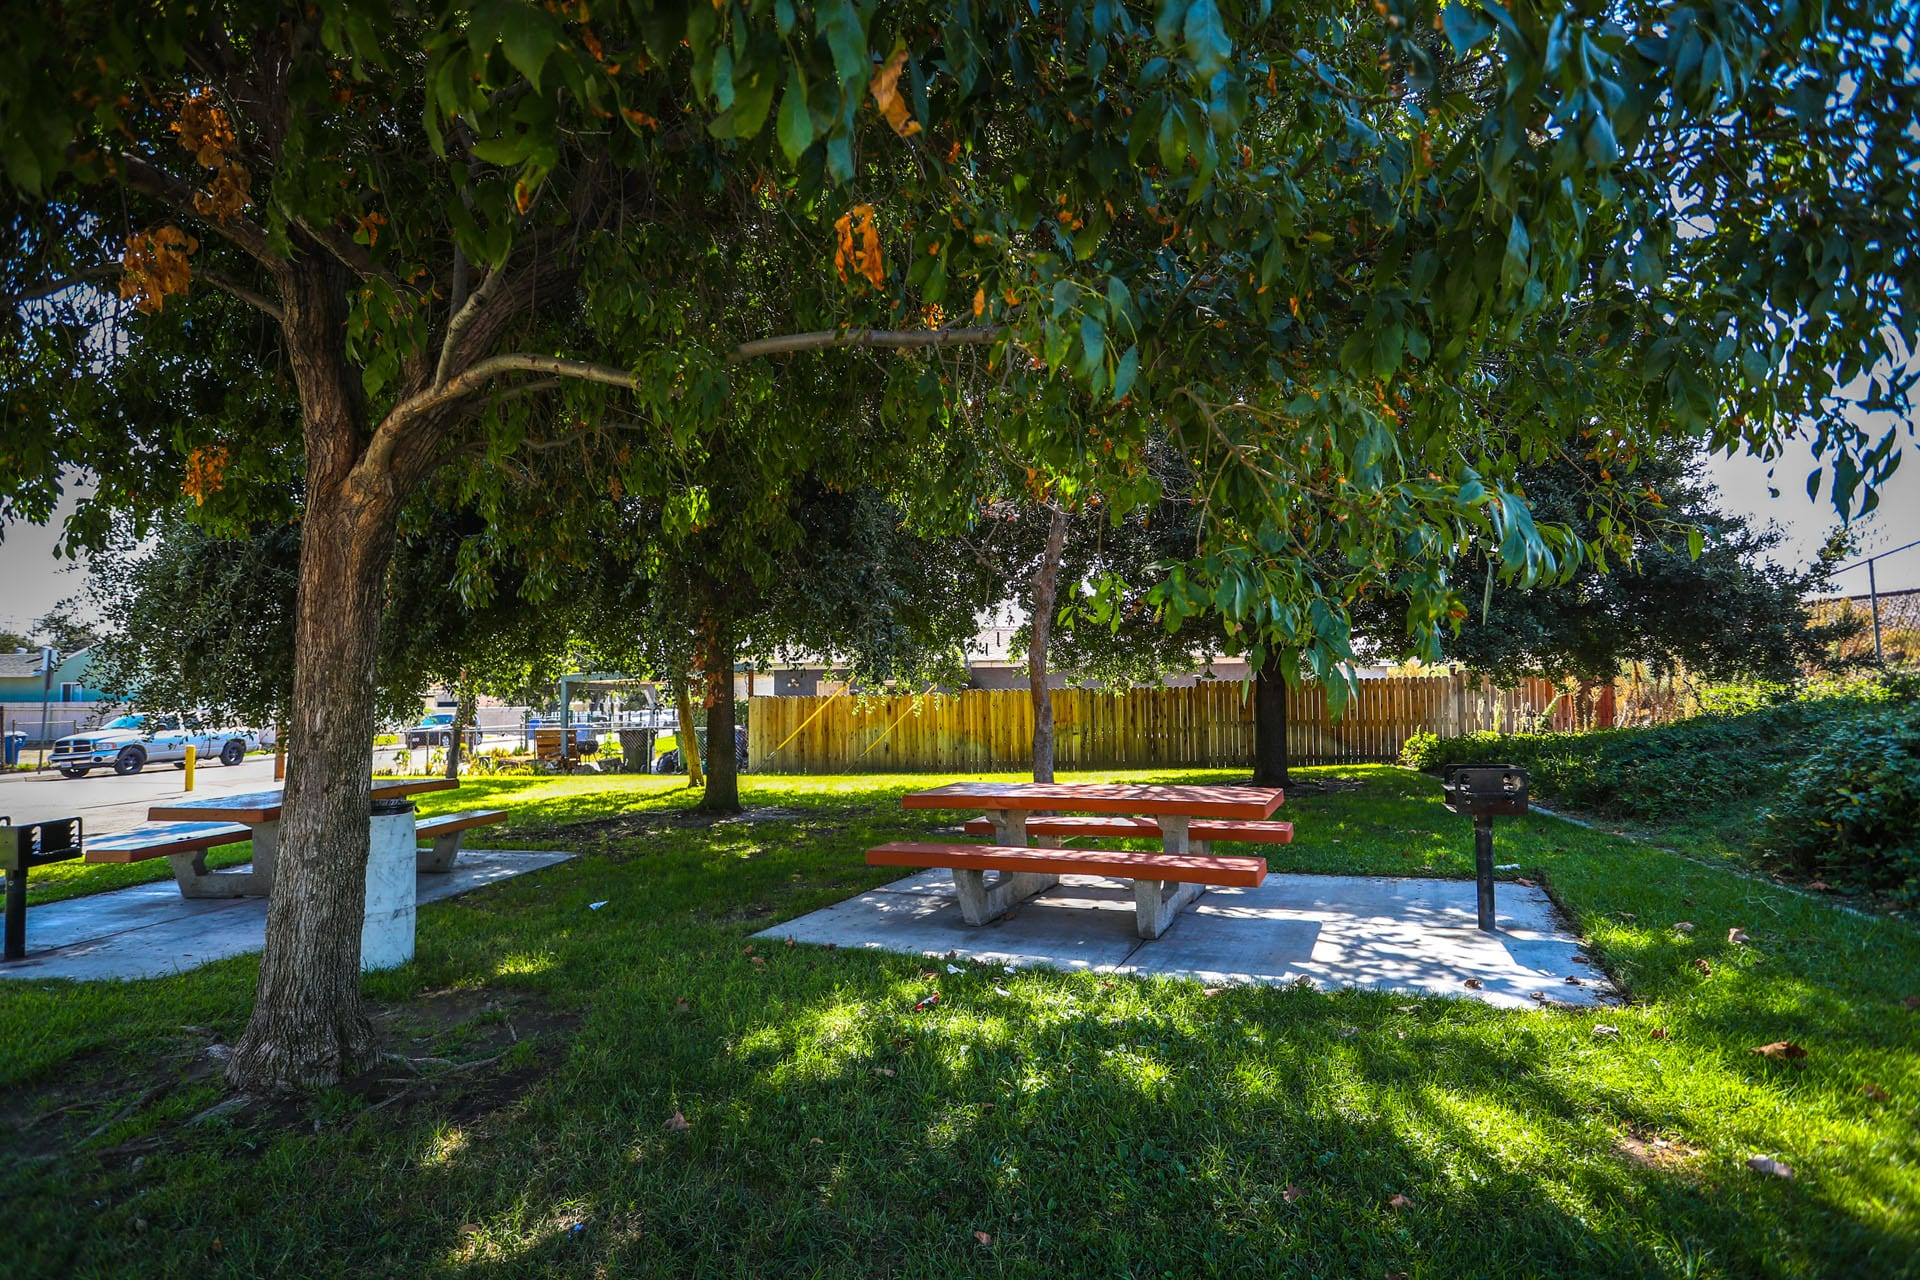 Picnic table shaded by trees